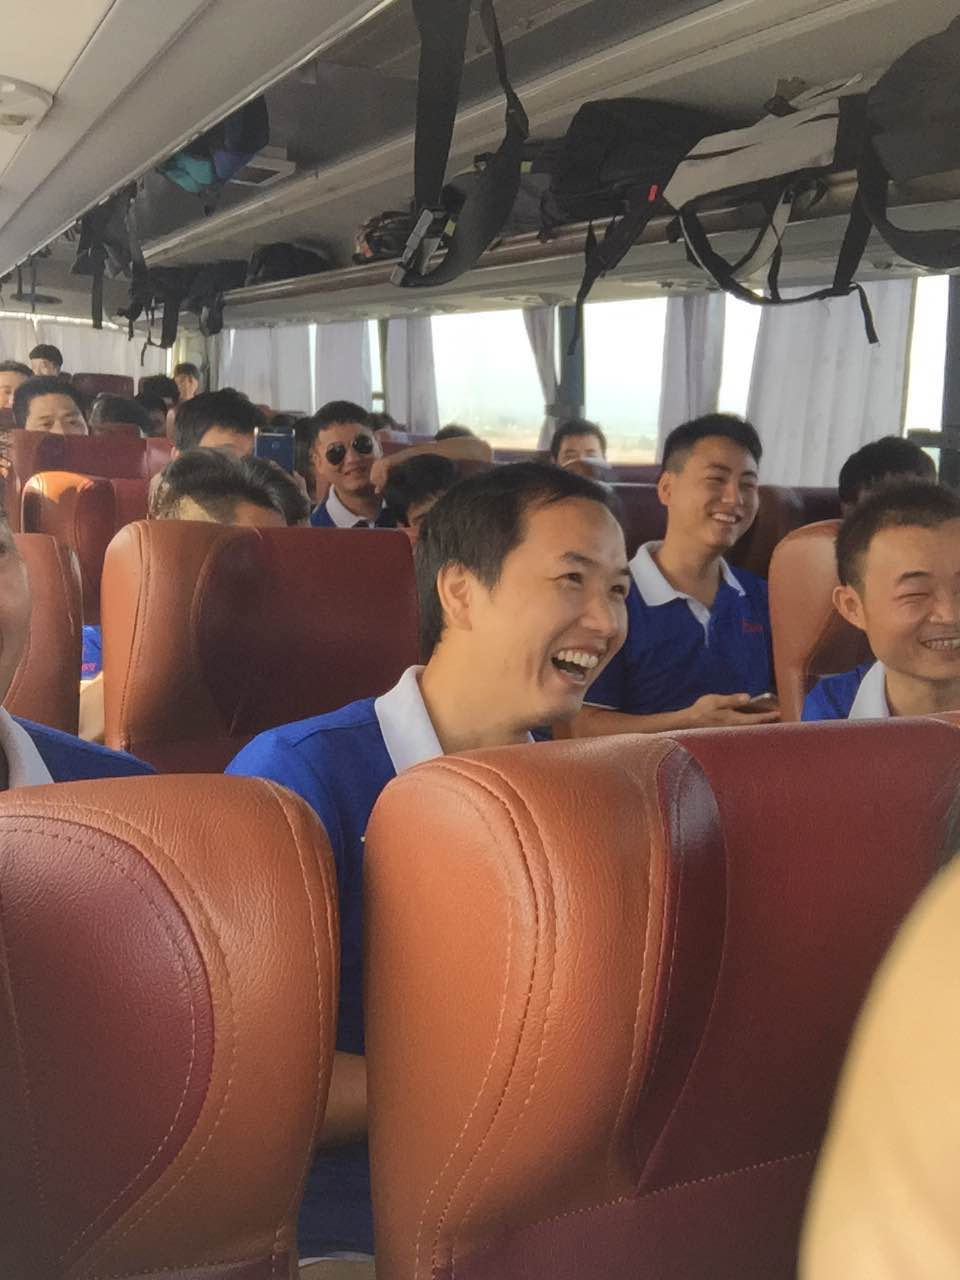 ABERY COLLEAGUES TAKE A TRIP FOR TOURISM IN QINGYUAN